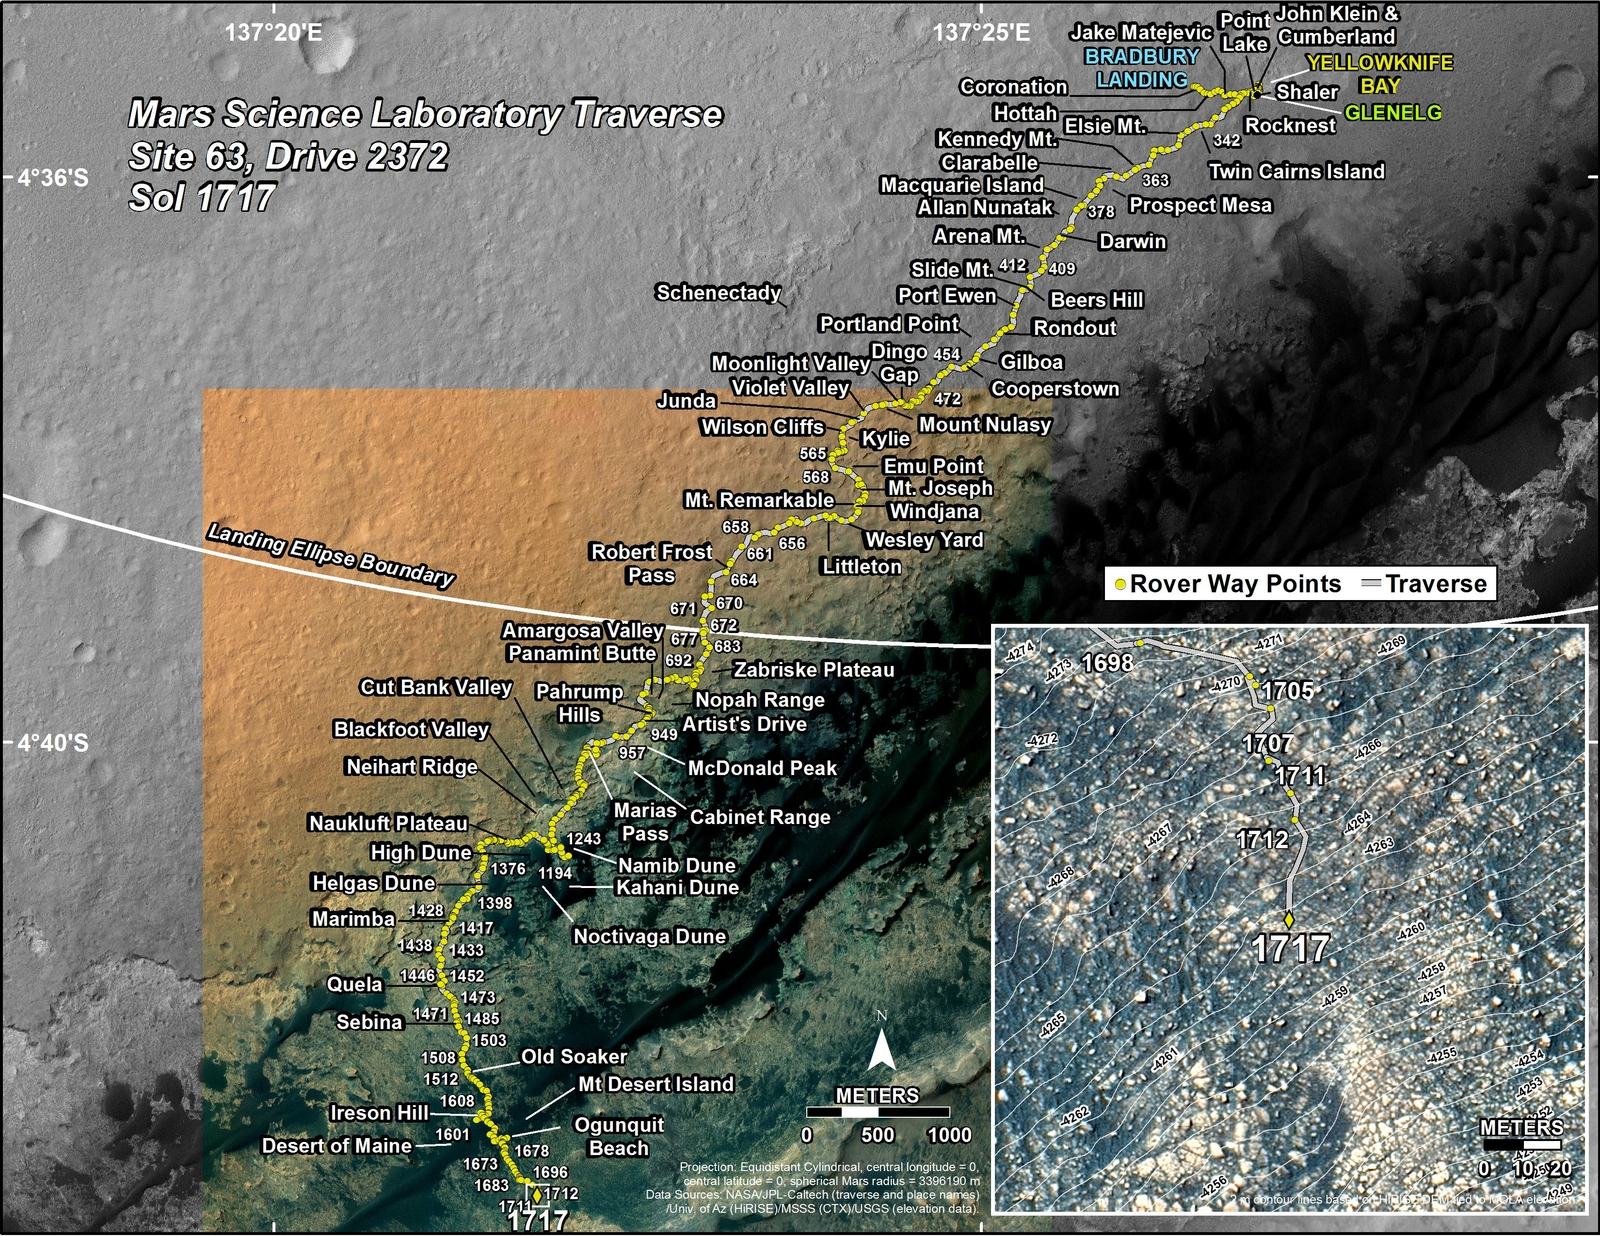 This map shows the route driven by NASA's Mars rover Curiosity through the 1717 Martian day, or sol, of the rover's mission on Mars (June 05, 2017).